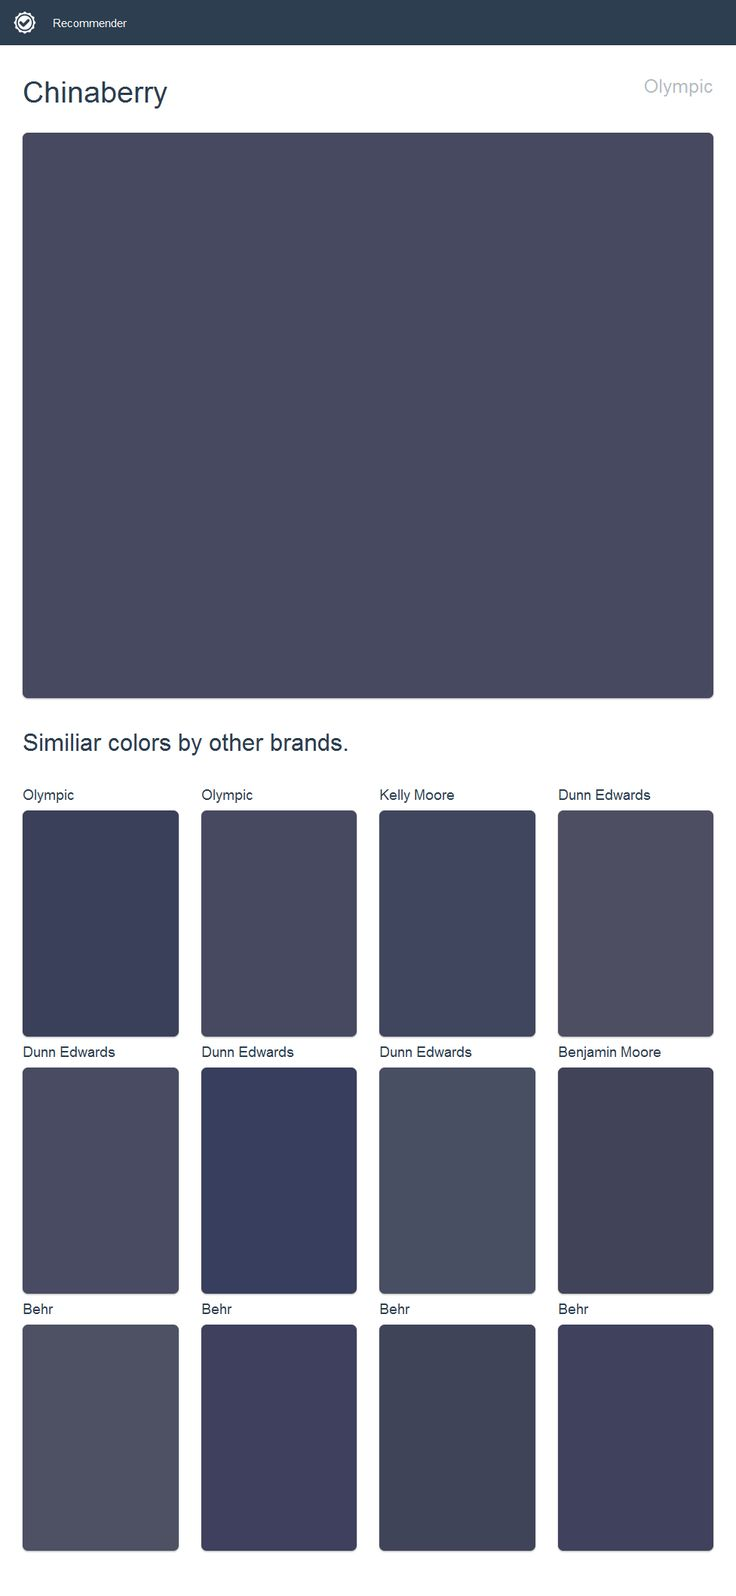 Chinaberry Olympic Click The Image To See Similiar Colors By Other Brands House Paint Exterior Dutch Boy Paint Valspar